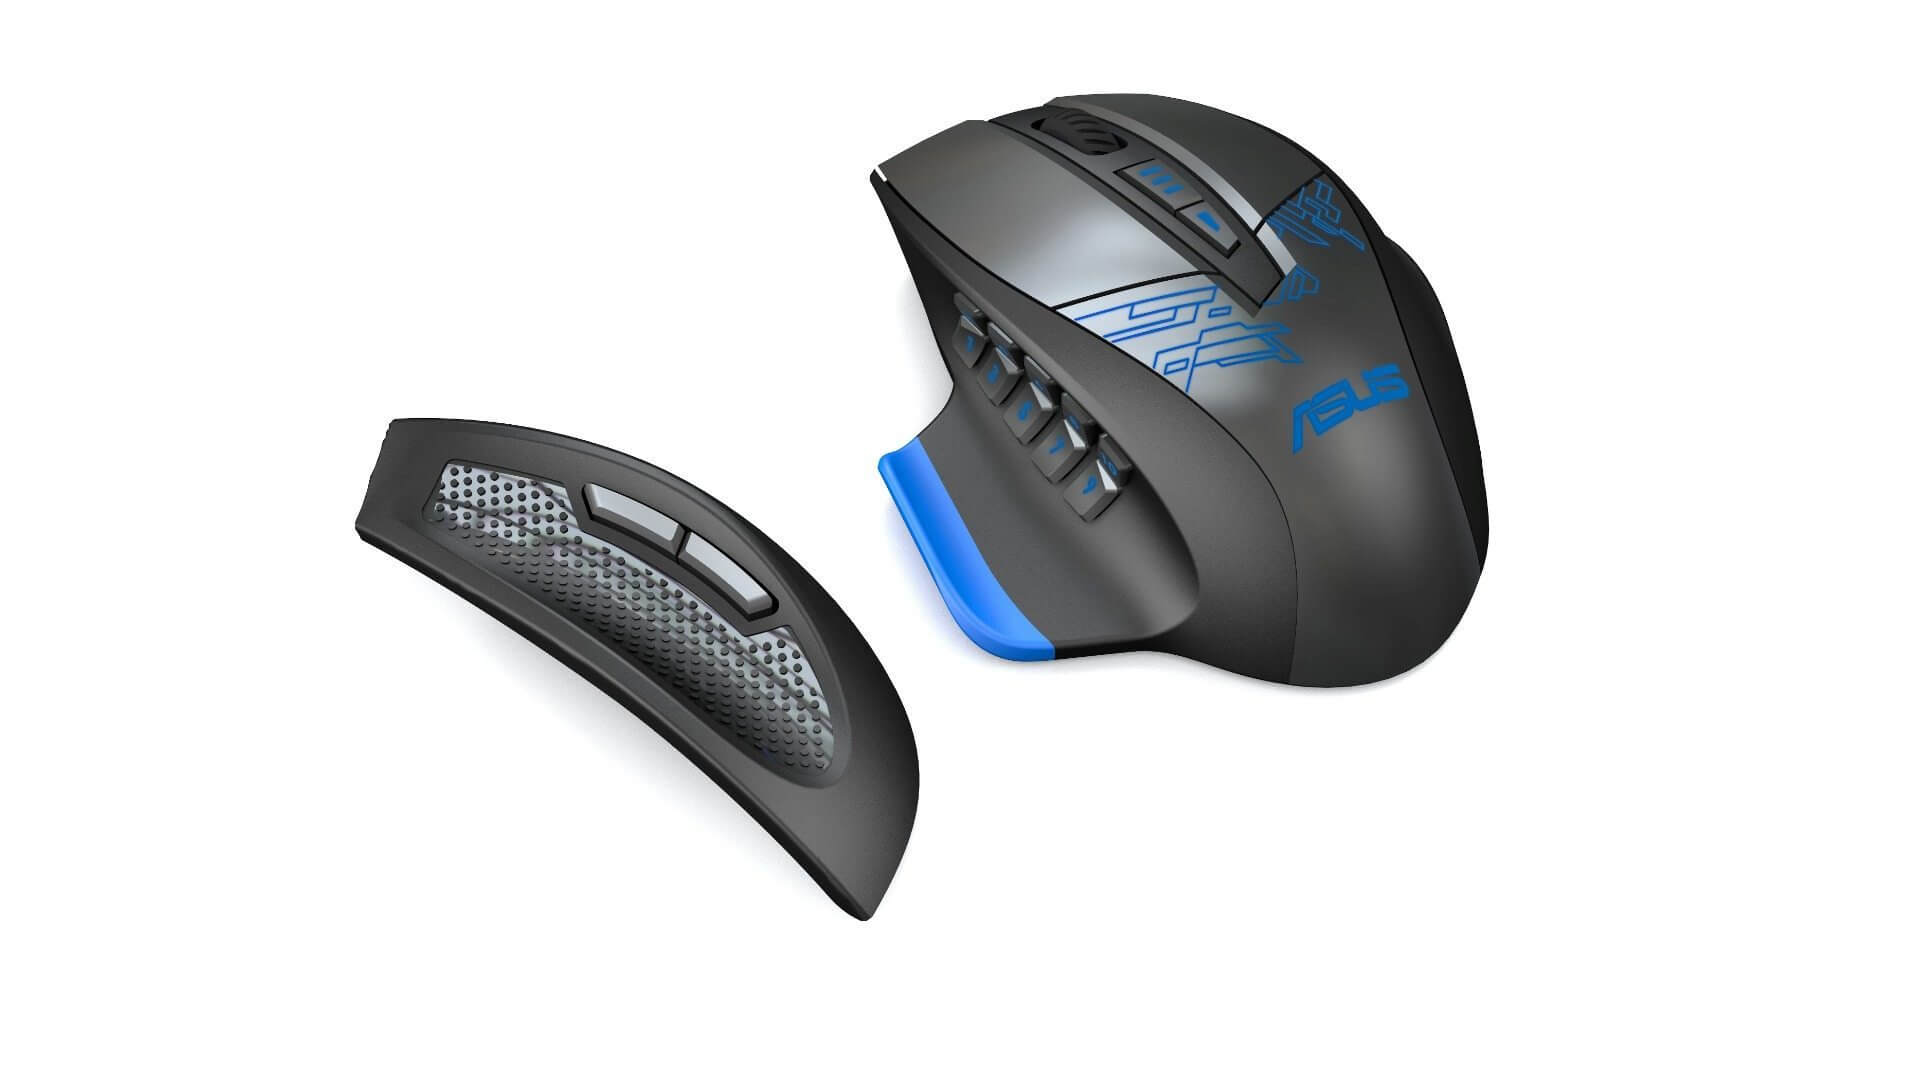 GX970 Mouse